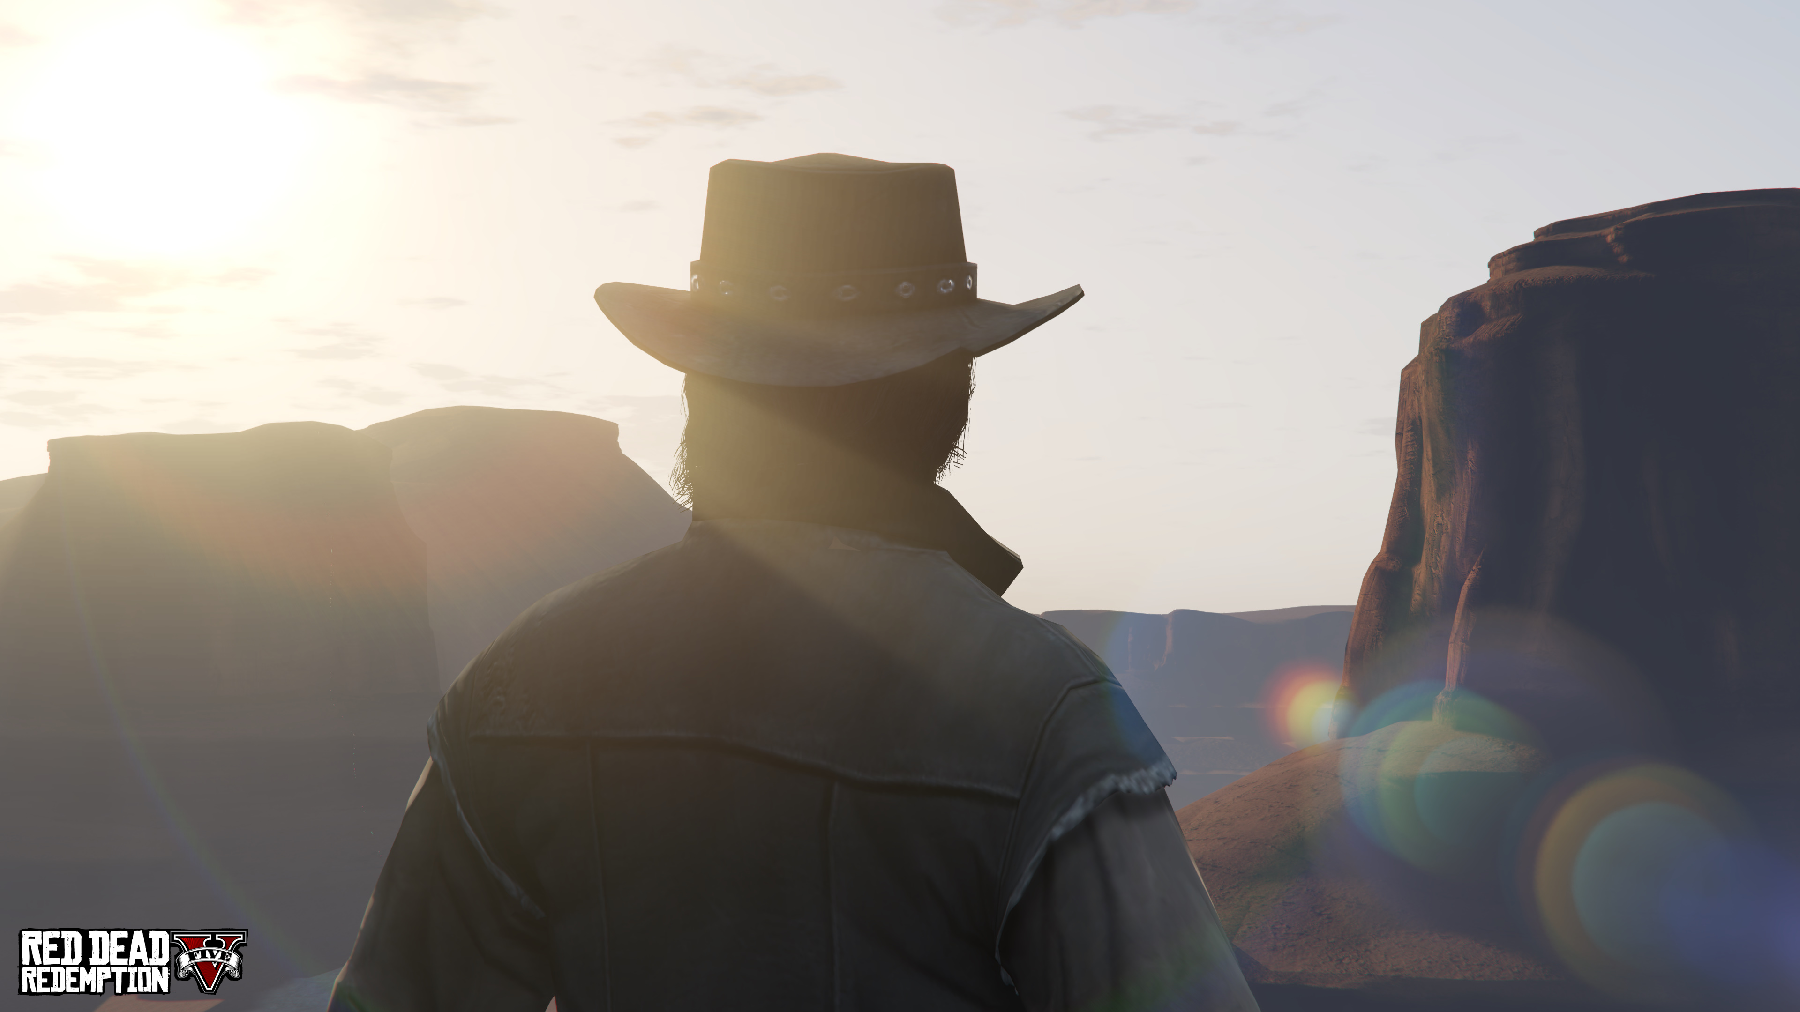 Red Dead Redemption Map Mod for GTA V Terminated by Take-Two